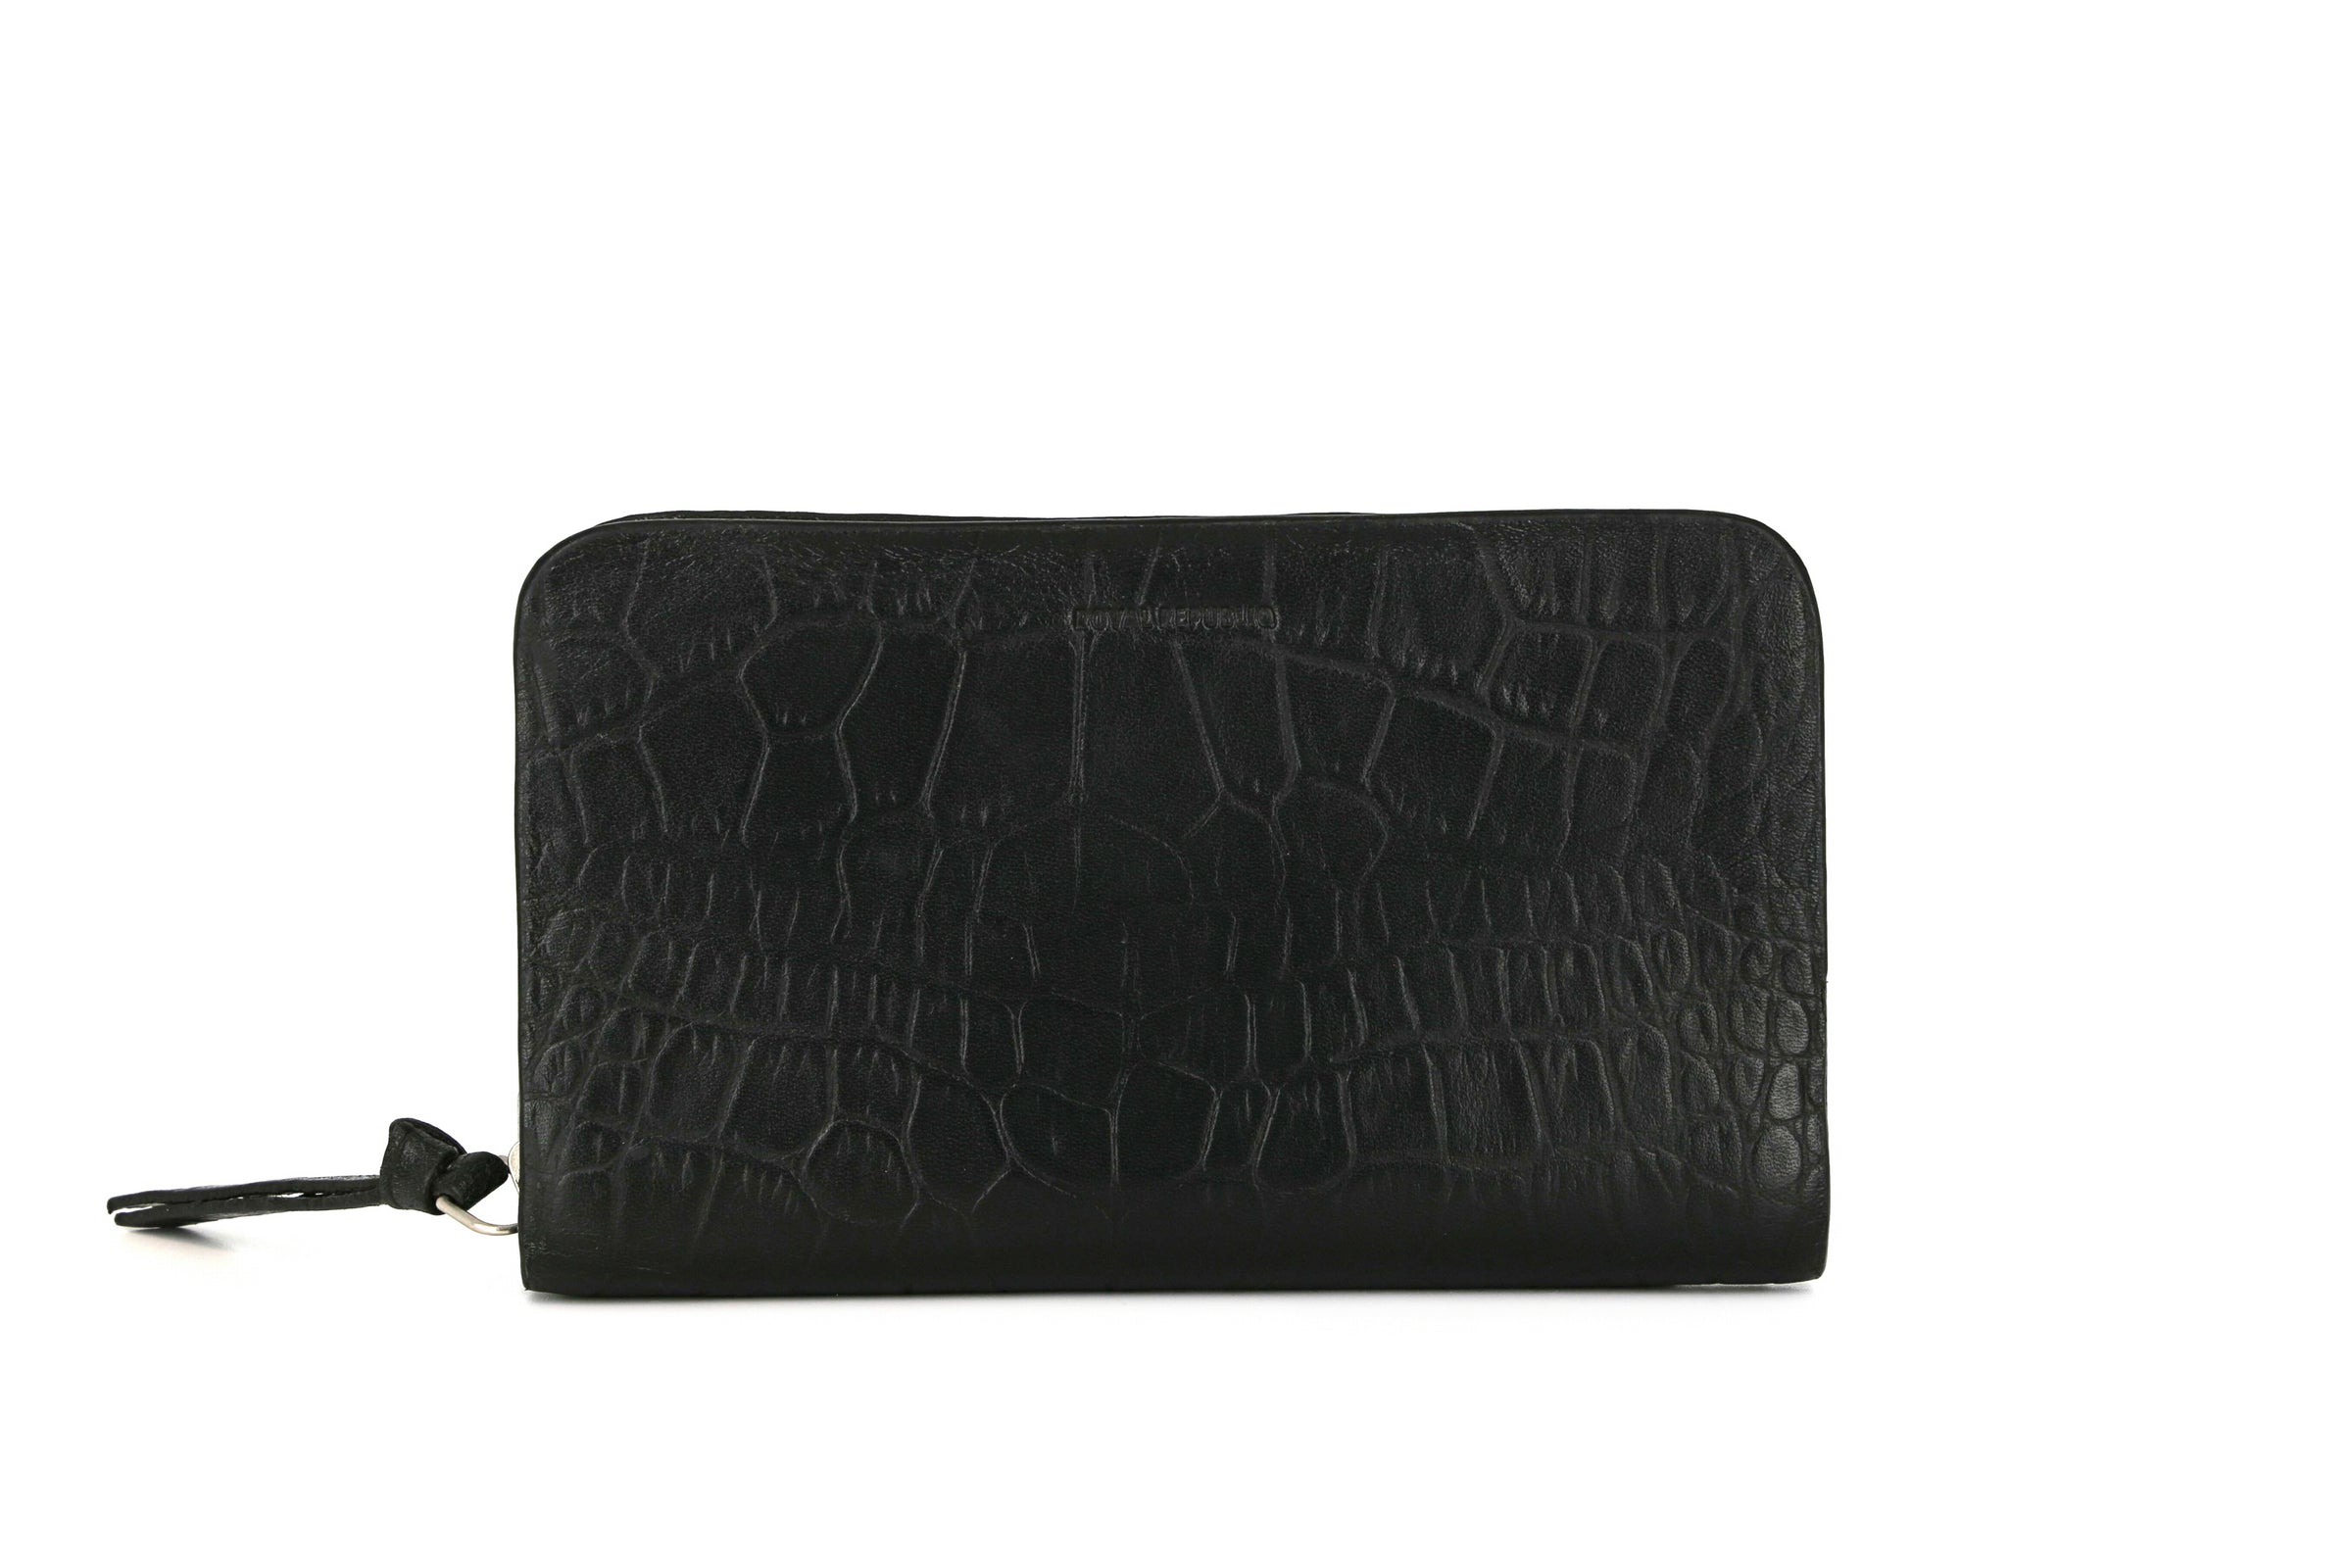 Galax Croco Wallet Miniature